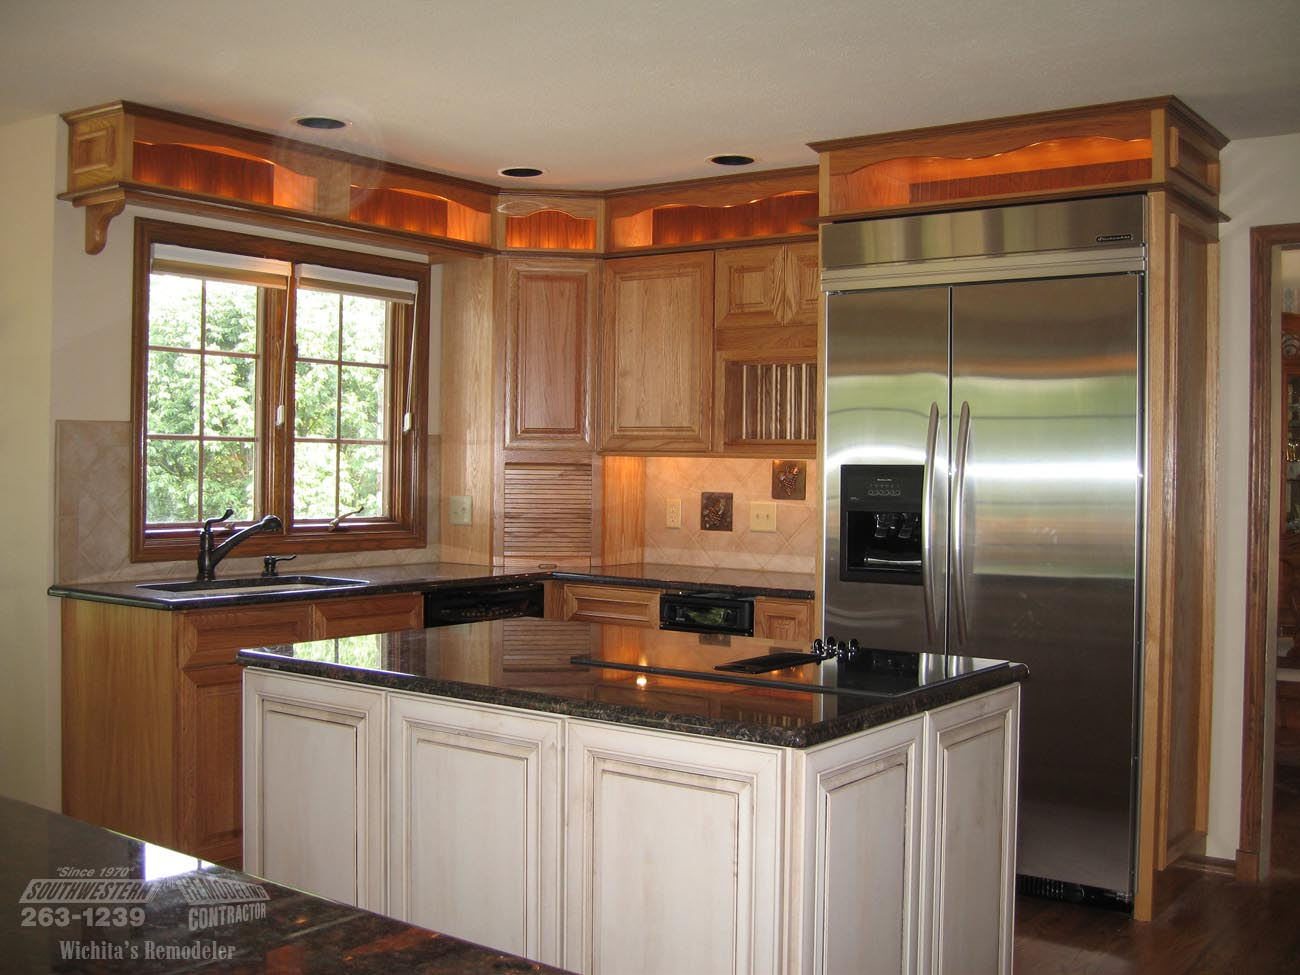 30 · Kitchen Remodeling Wichita Home Remodeling